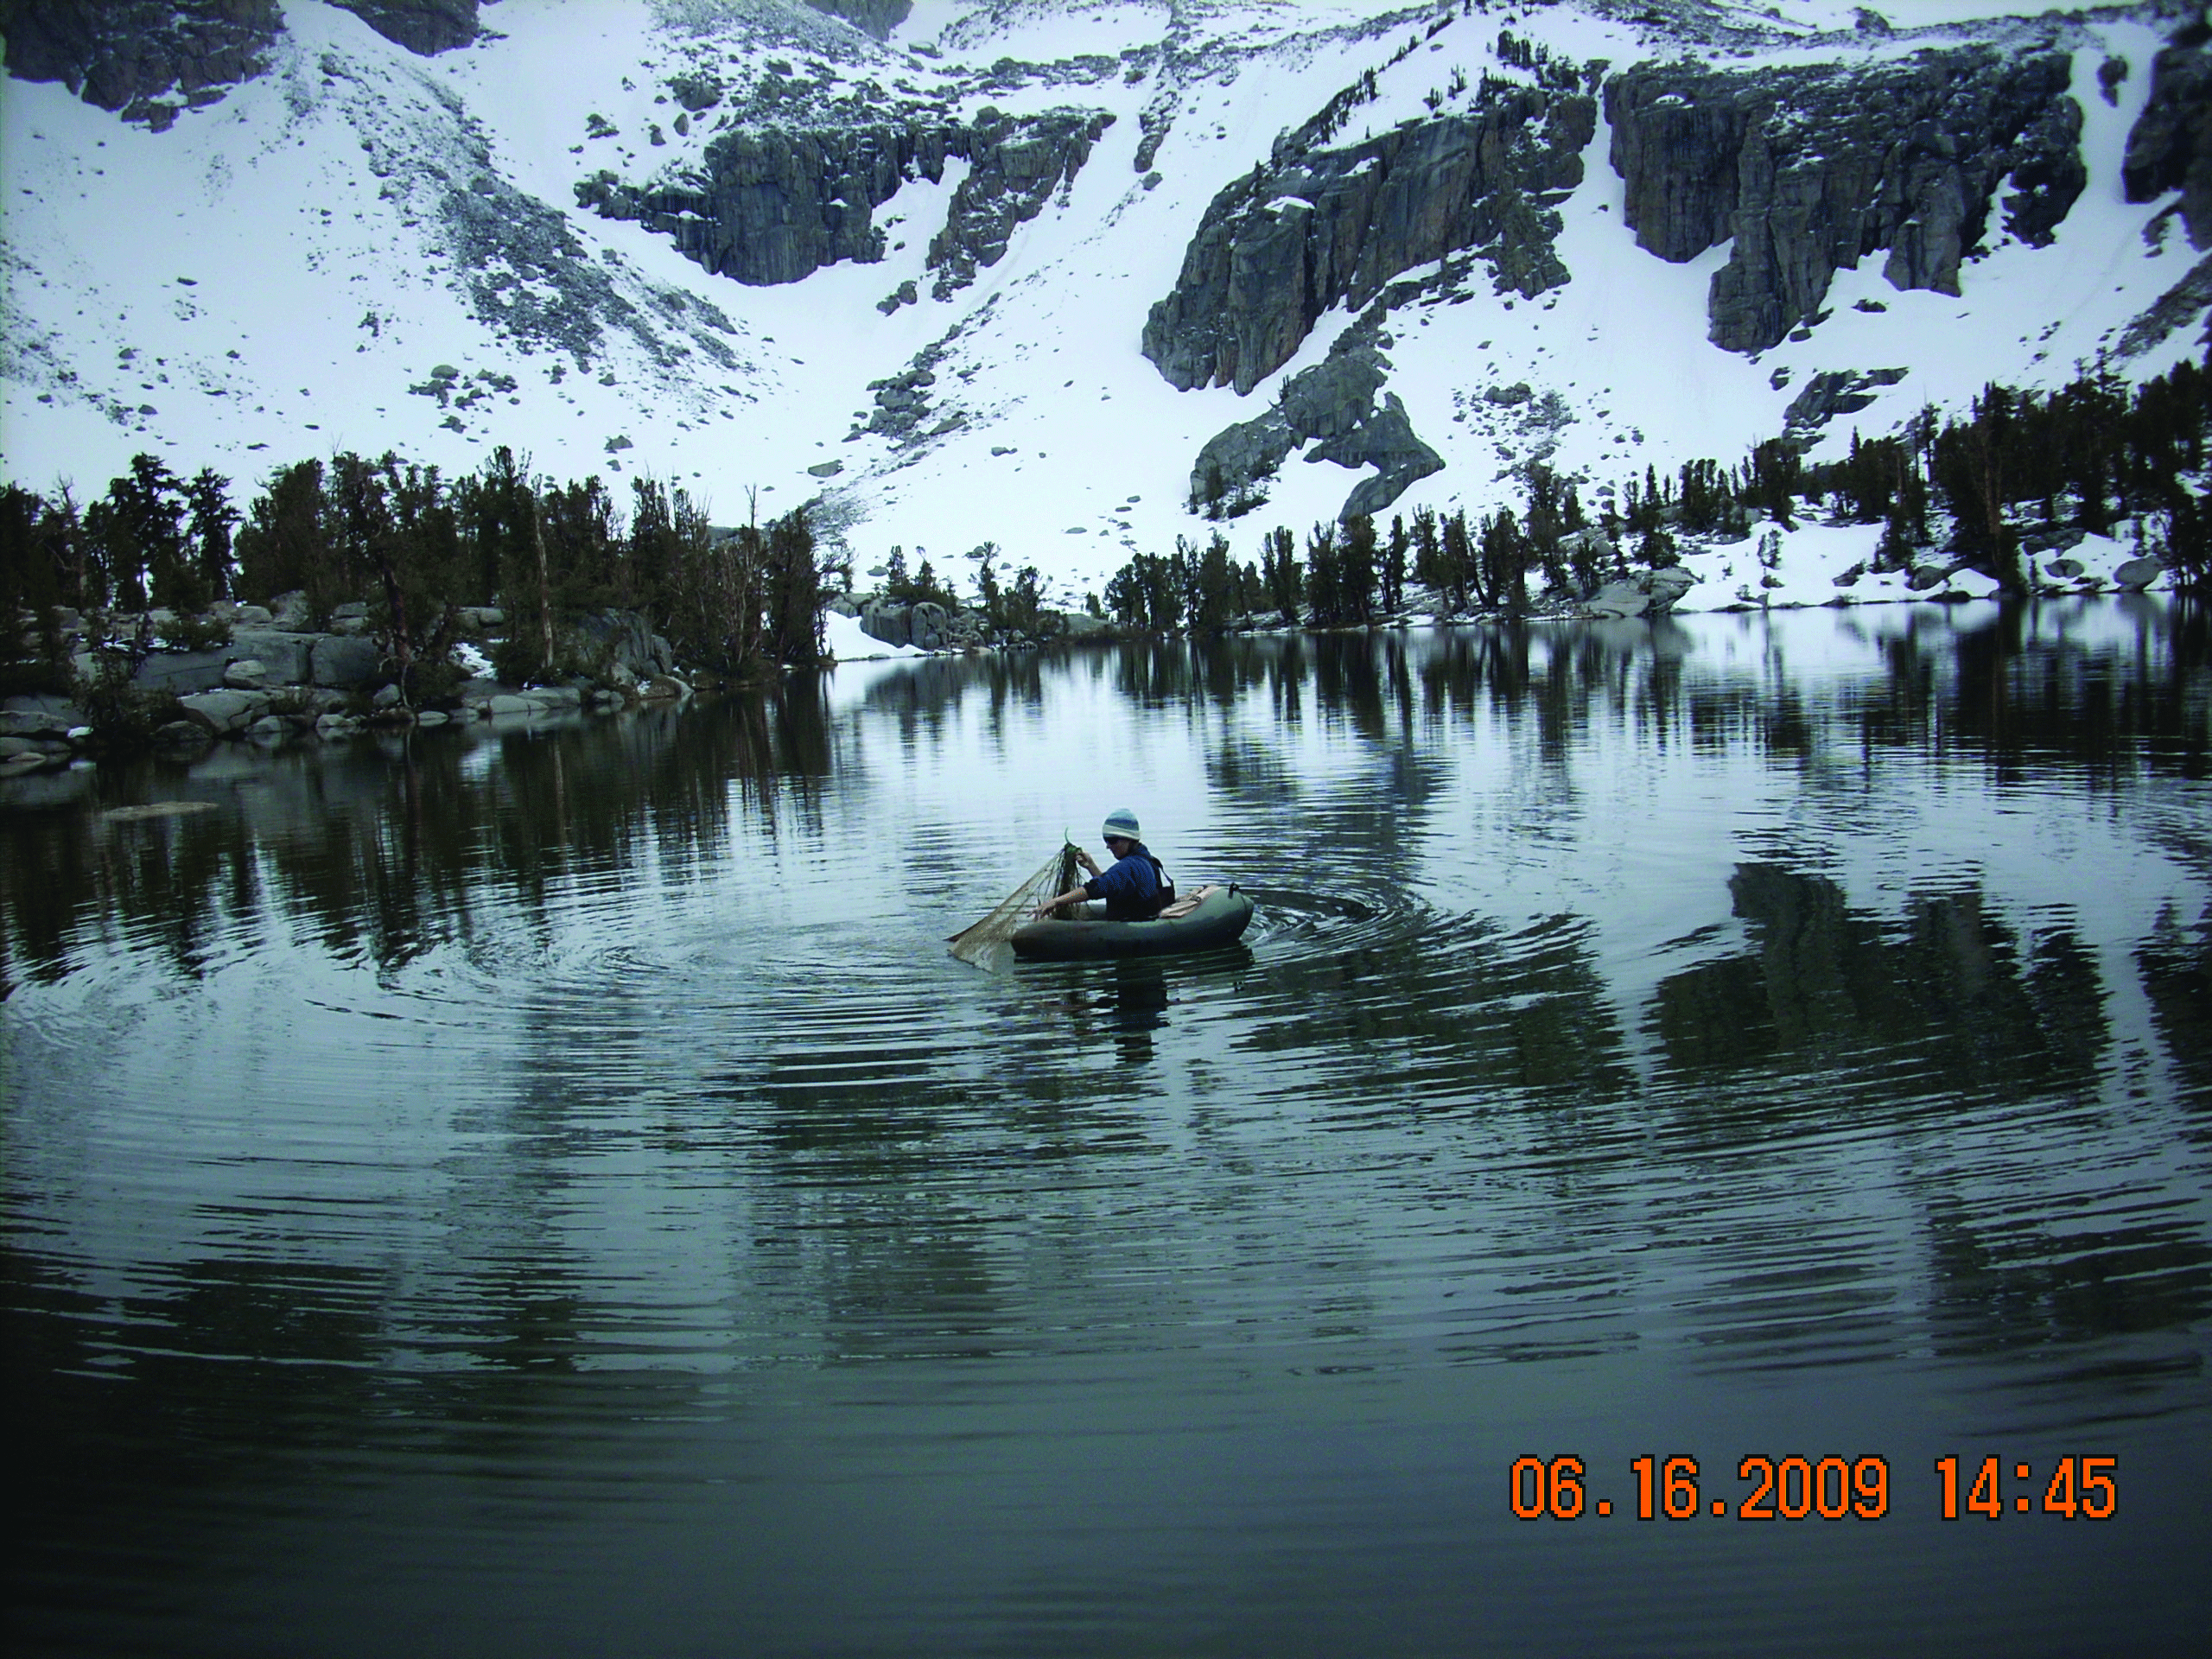 CDFW Biologist checks a gill net used for fish monitoring at Matlock Lake in Inyo County, off the KEarsarge Pass Trail